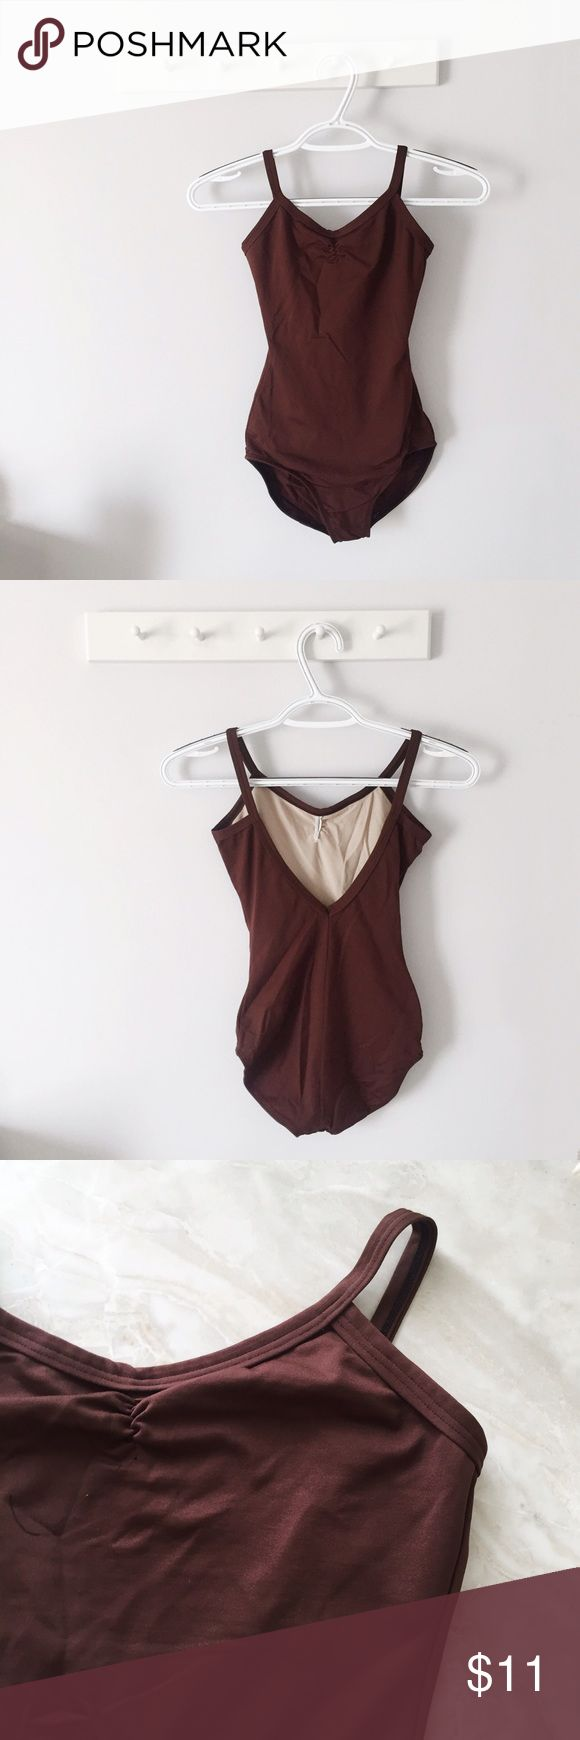 Brown Bodysuit/Leotard Brown Bodysuit/Leotard  * Great condition  * Camisole style * Women's small  * Brown  Styling Tip: Wear under skirt, pants, or to dance class   Please, no trades, all reasonable offers will be considered, & will ship within 1 business day ✨   8/16: uO17p11LO6-6m5 Tops